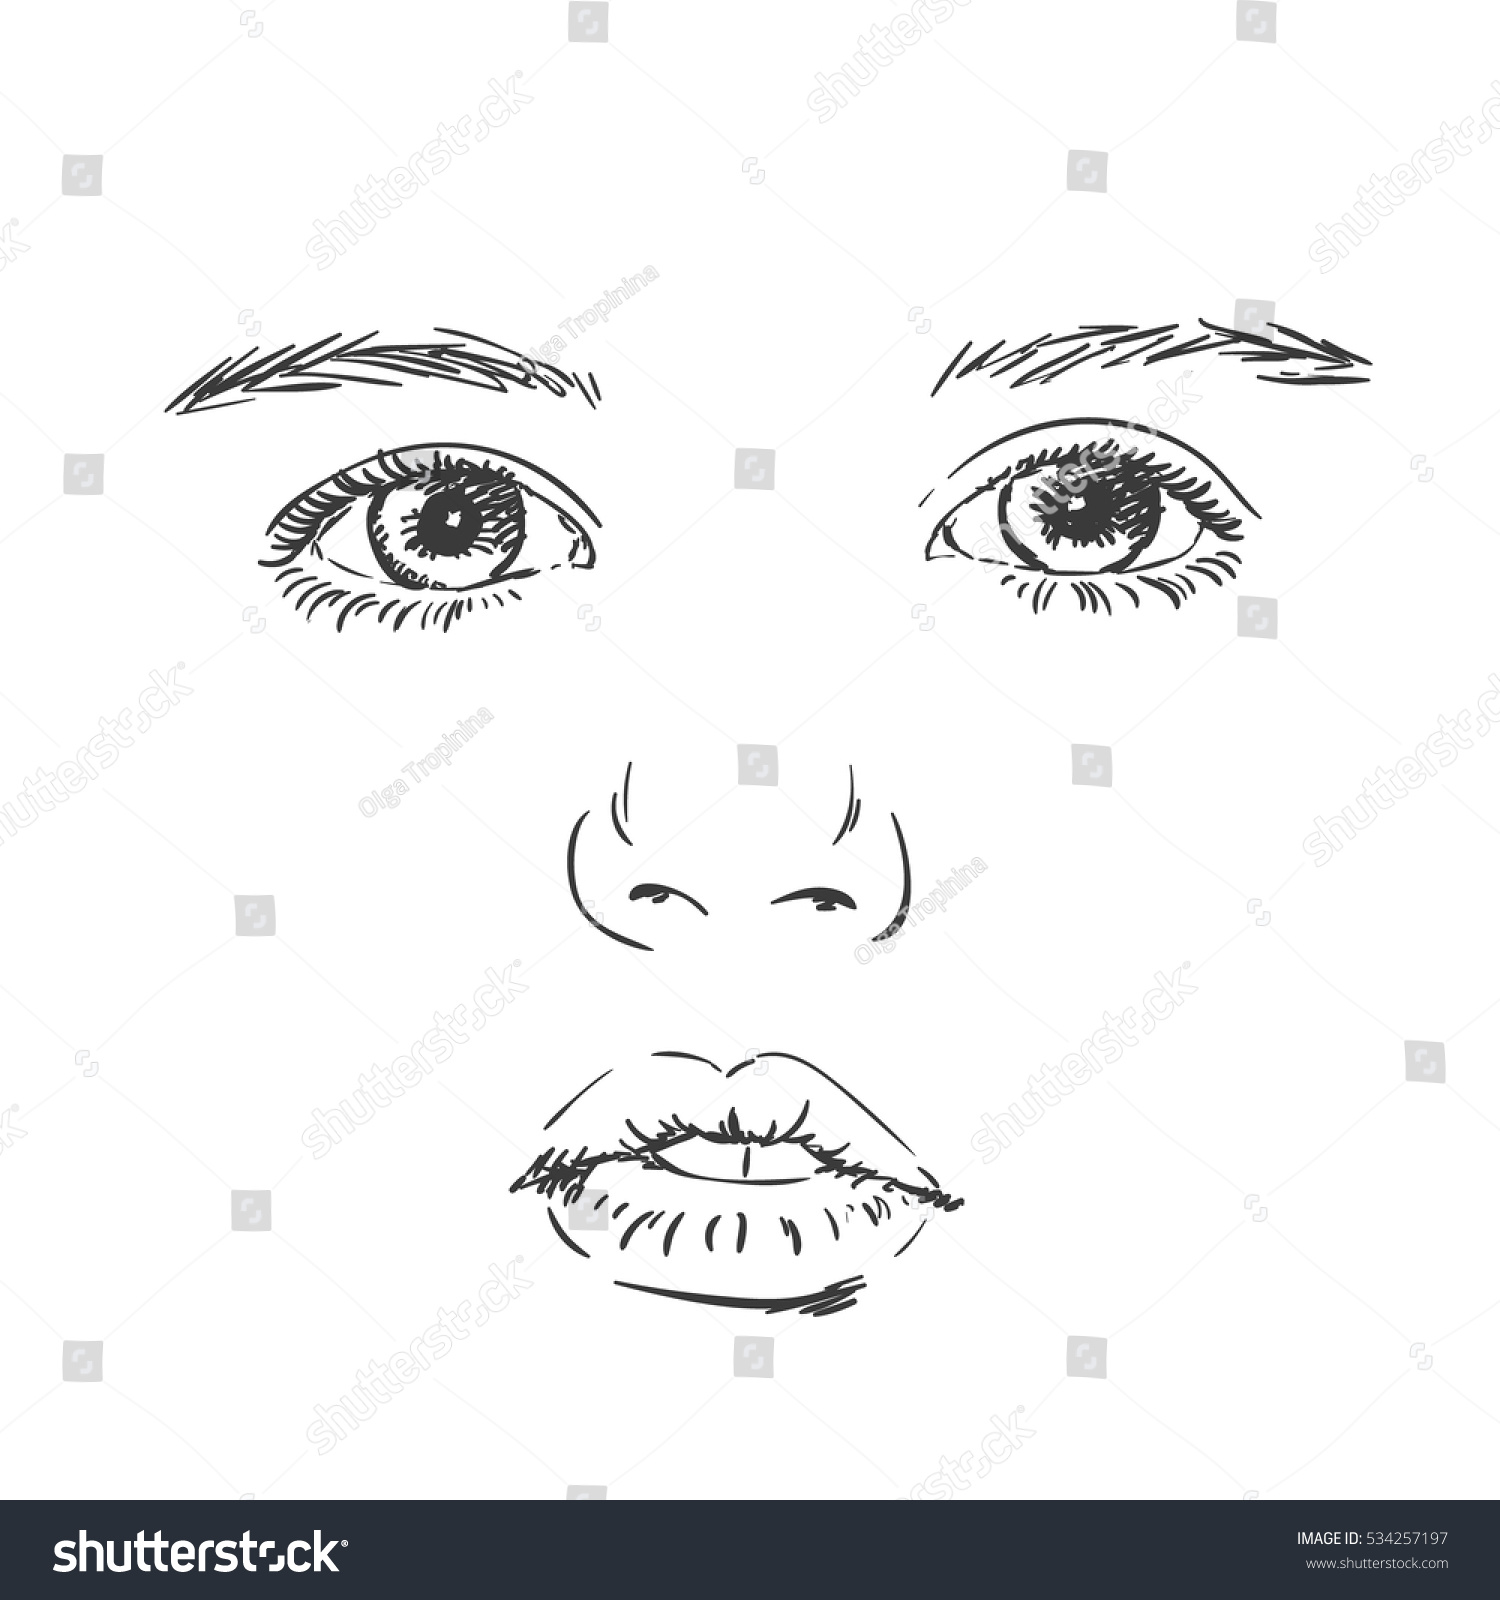 Face of baby girl vector sketch hand drawn illustration